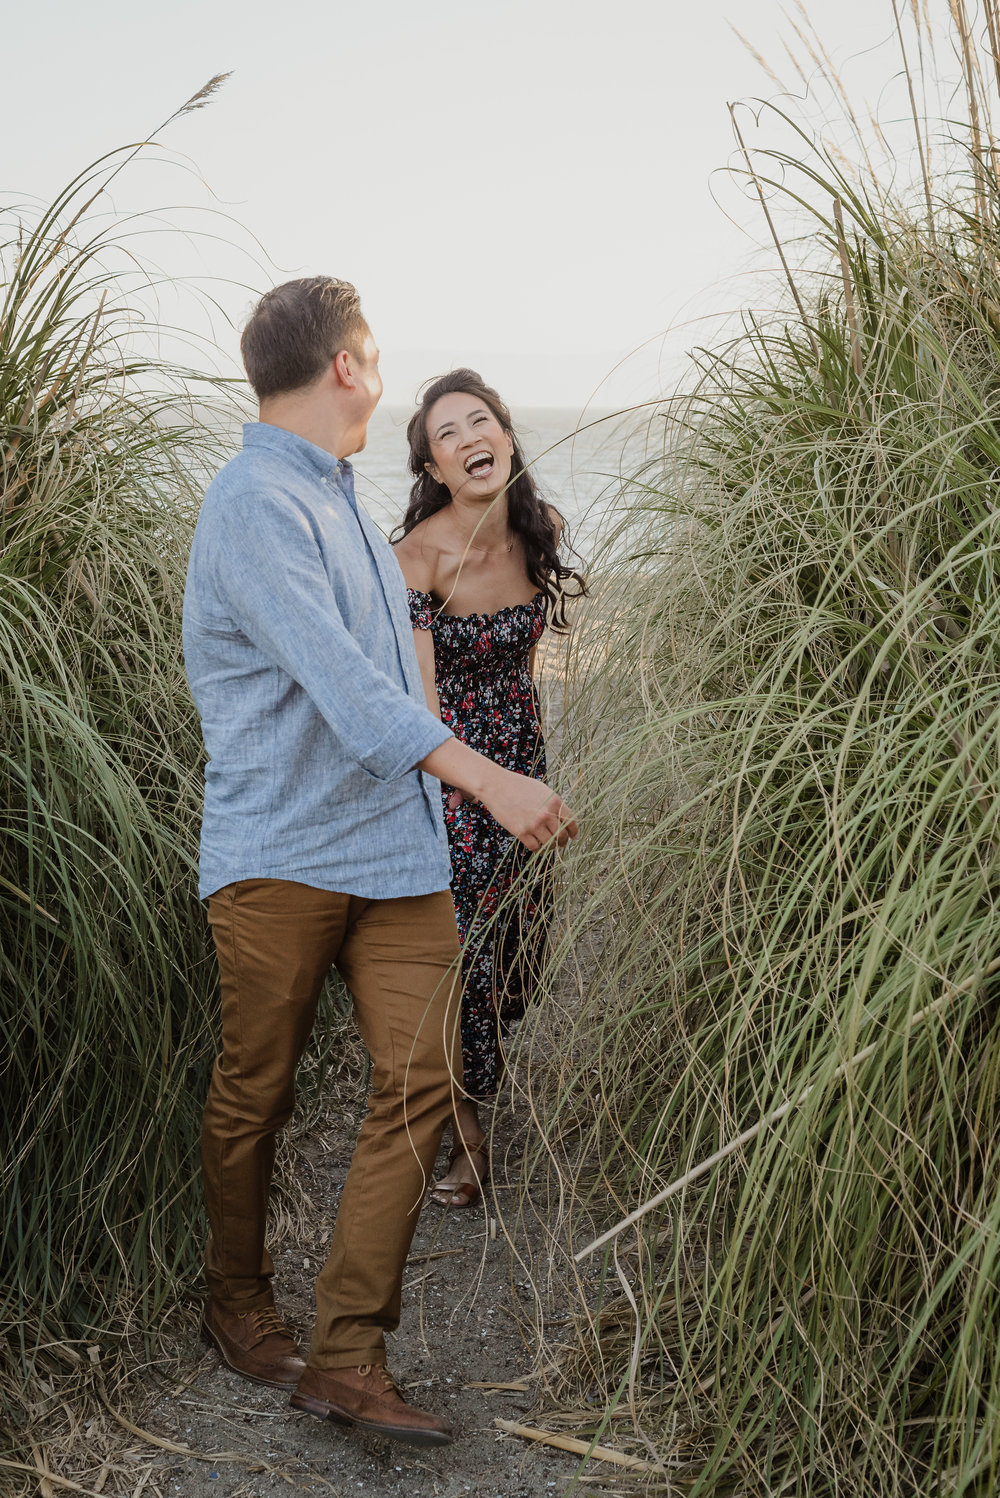 alameda-crown-memorial-state-beach-engagement-session-vivianchen-041.jpg